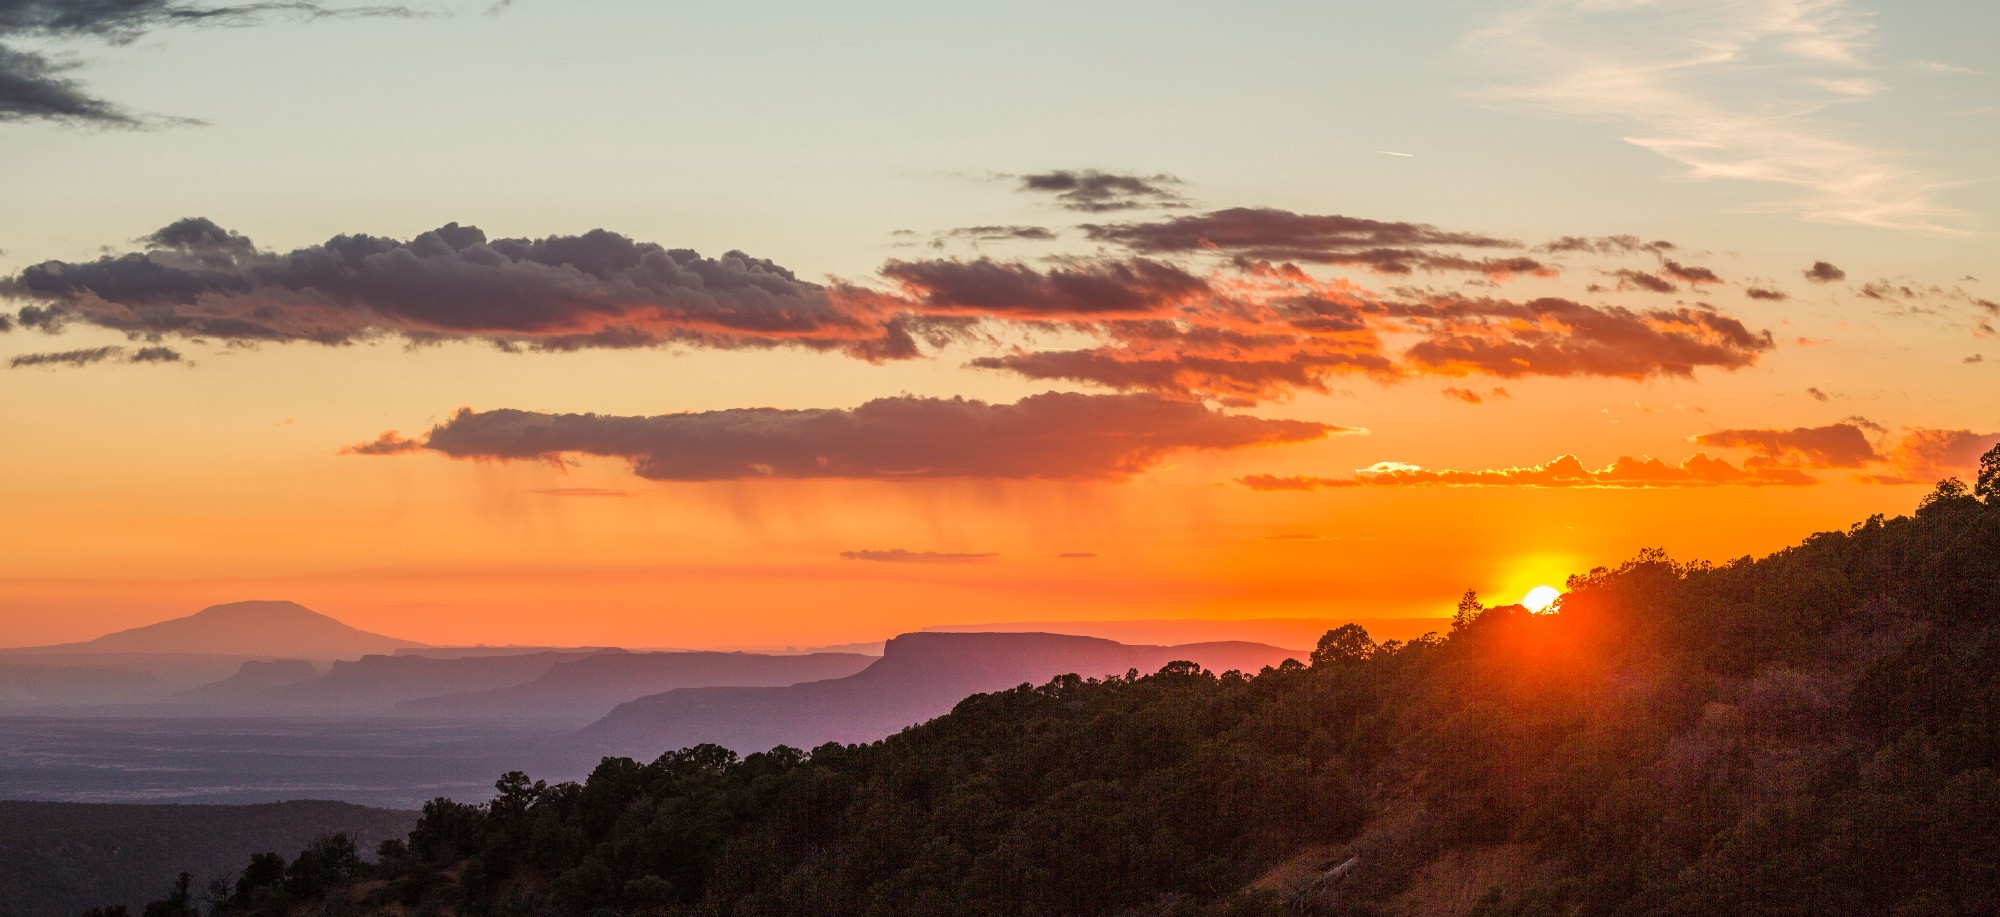 - Sunset from behind the Bears Ears west butte in the Manti-La Sal National Forest.